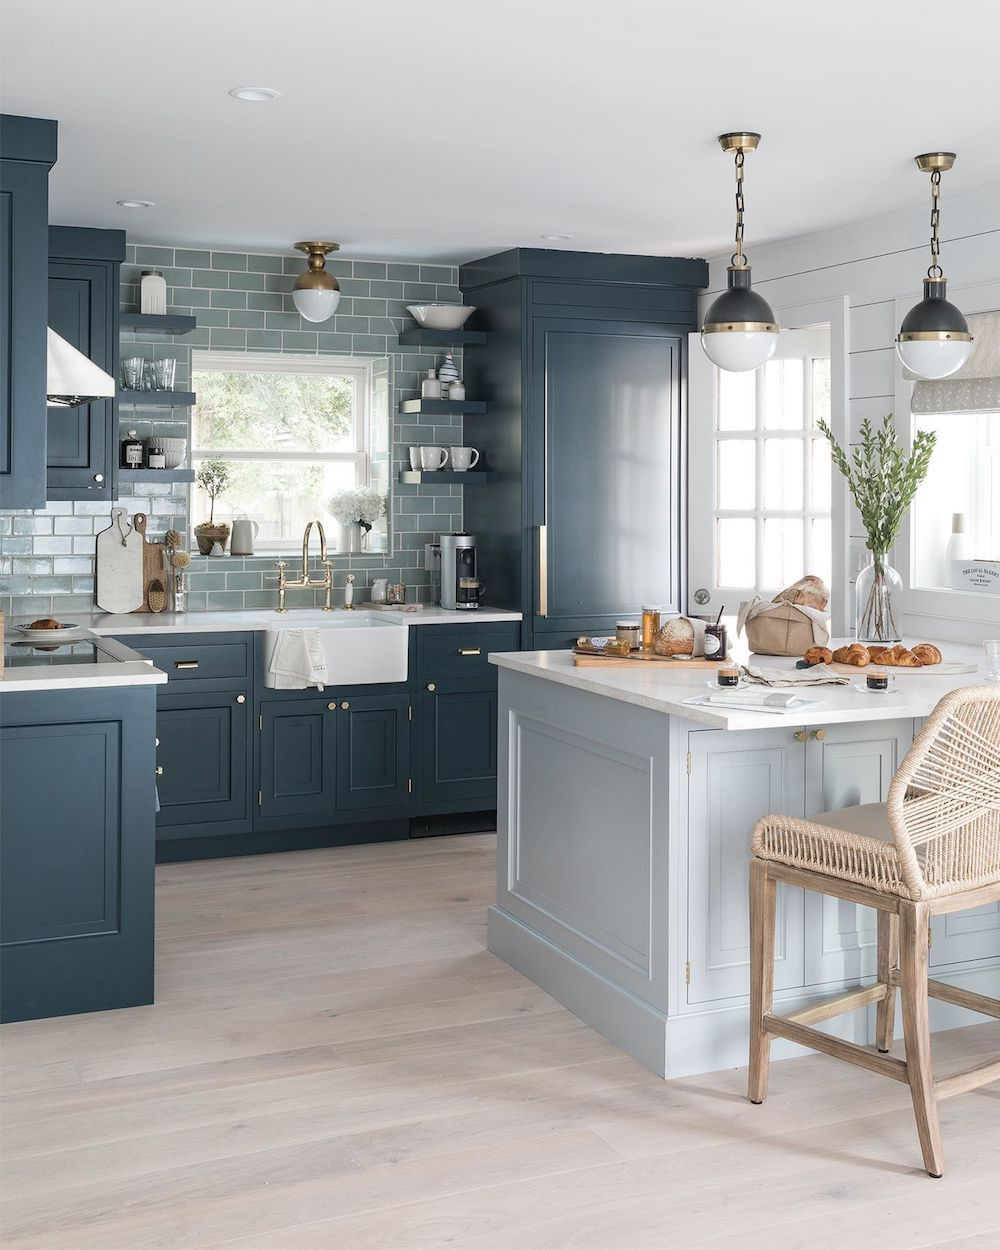 Kitchen Decorating Accessories: The Modern, Nautical House Of Your Beach Home Dreams